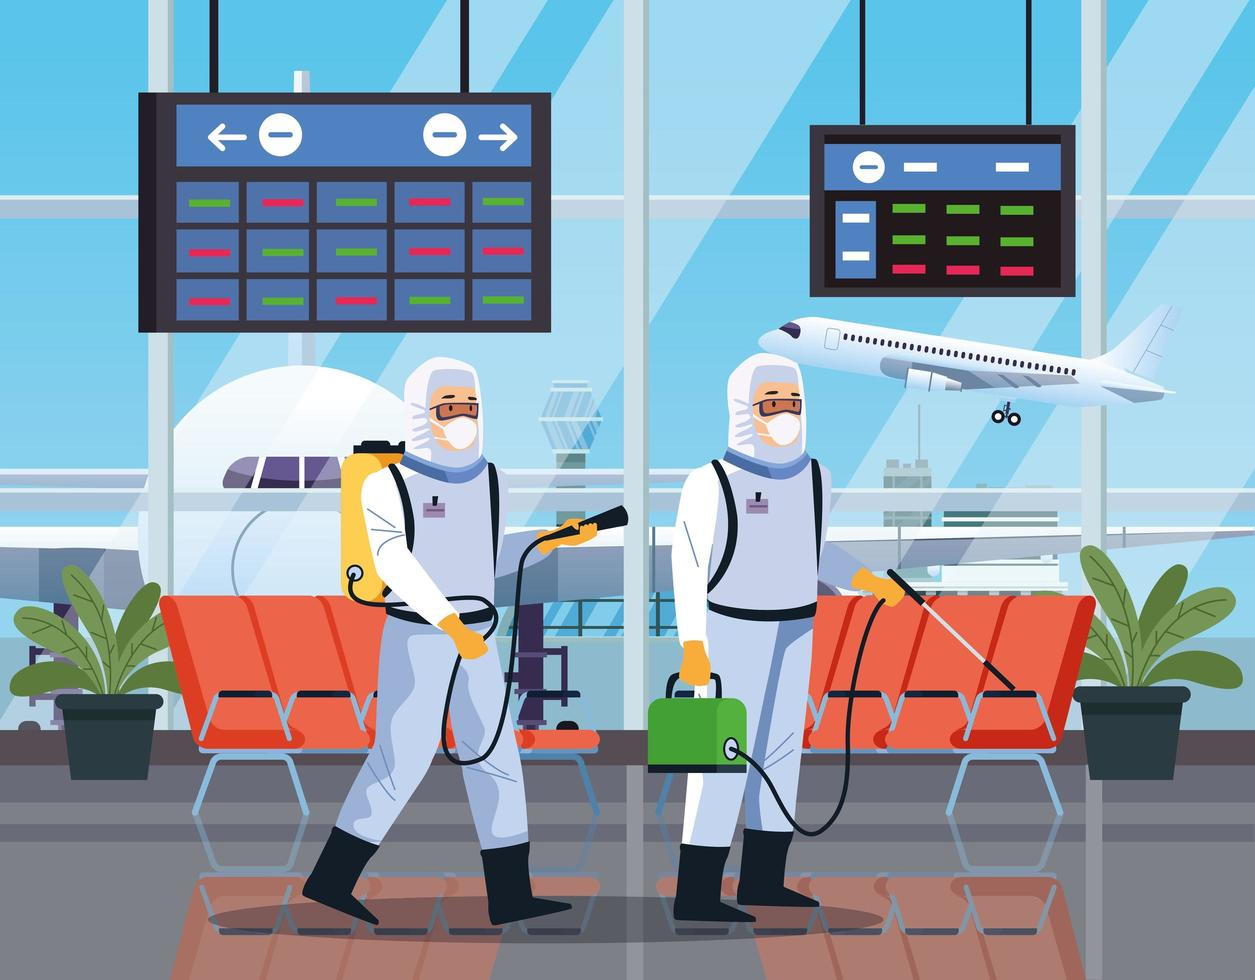 Two biosafety workers disinfect airport vector